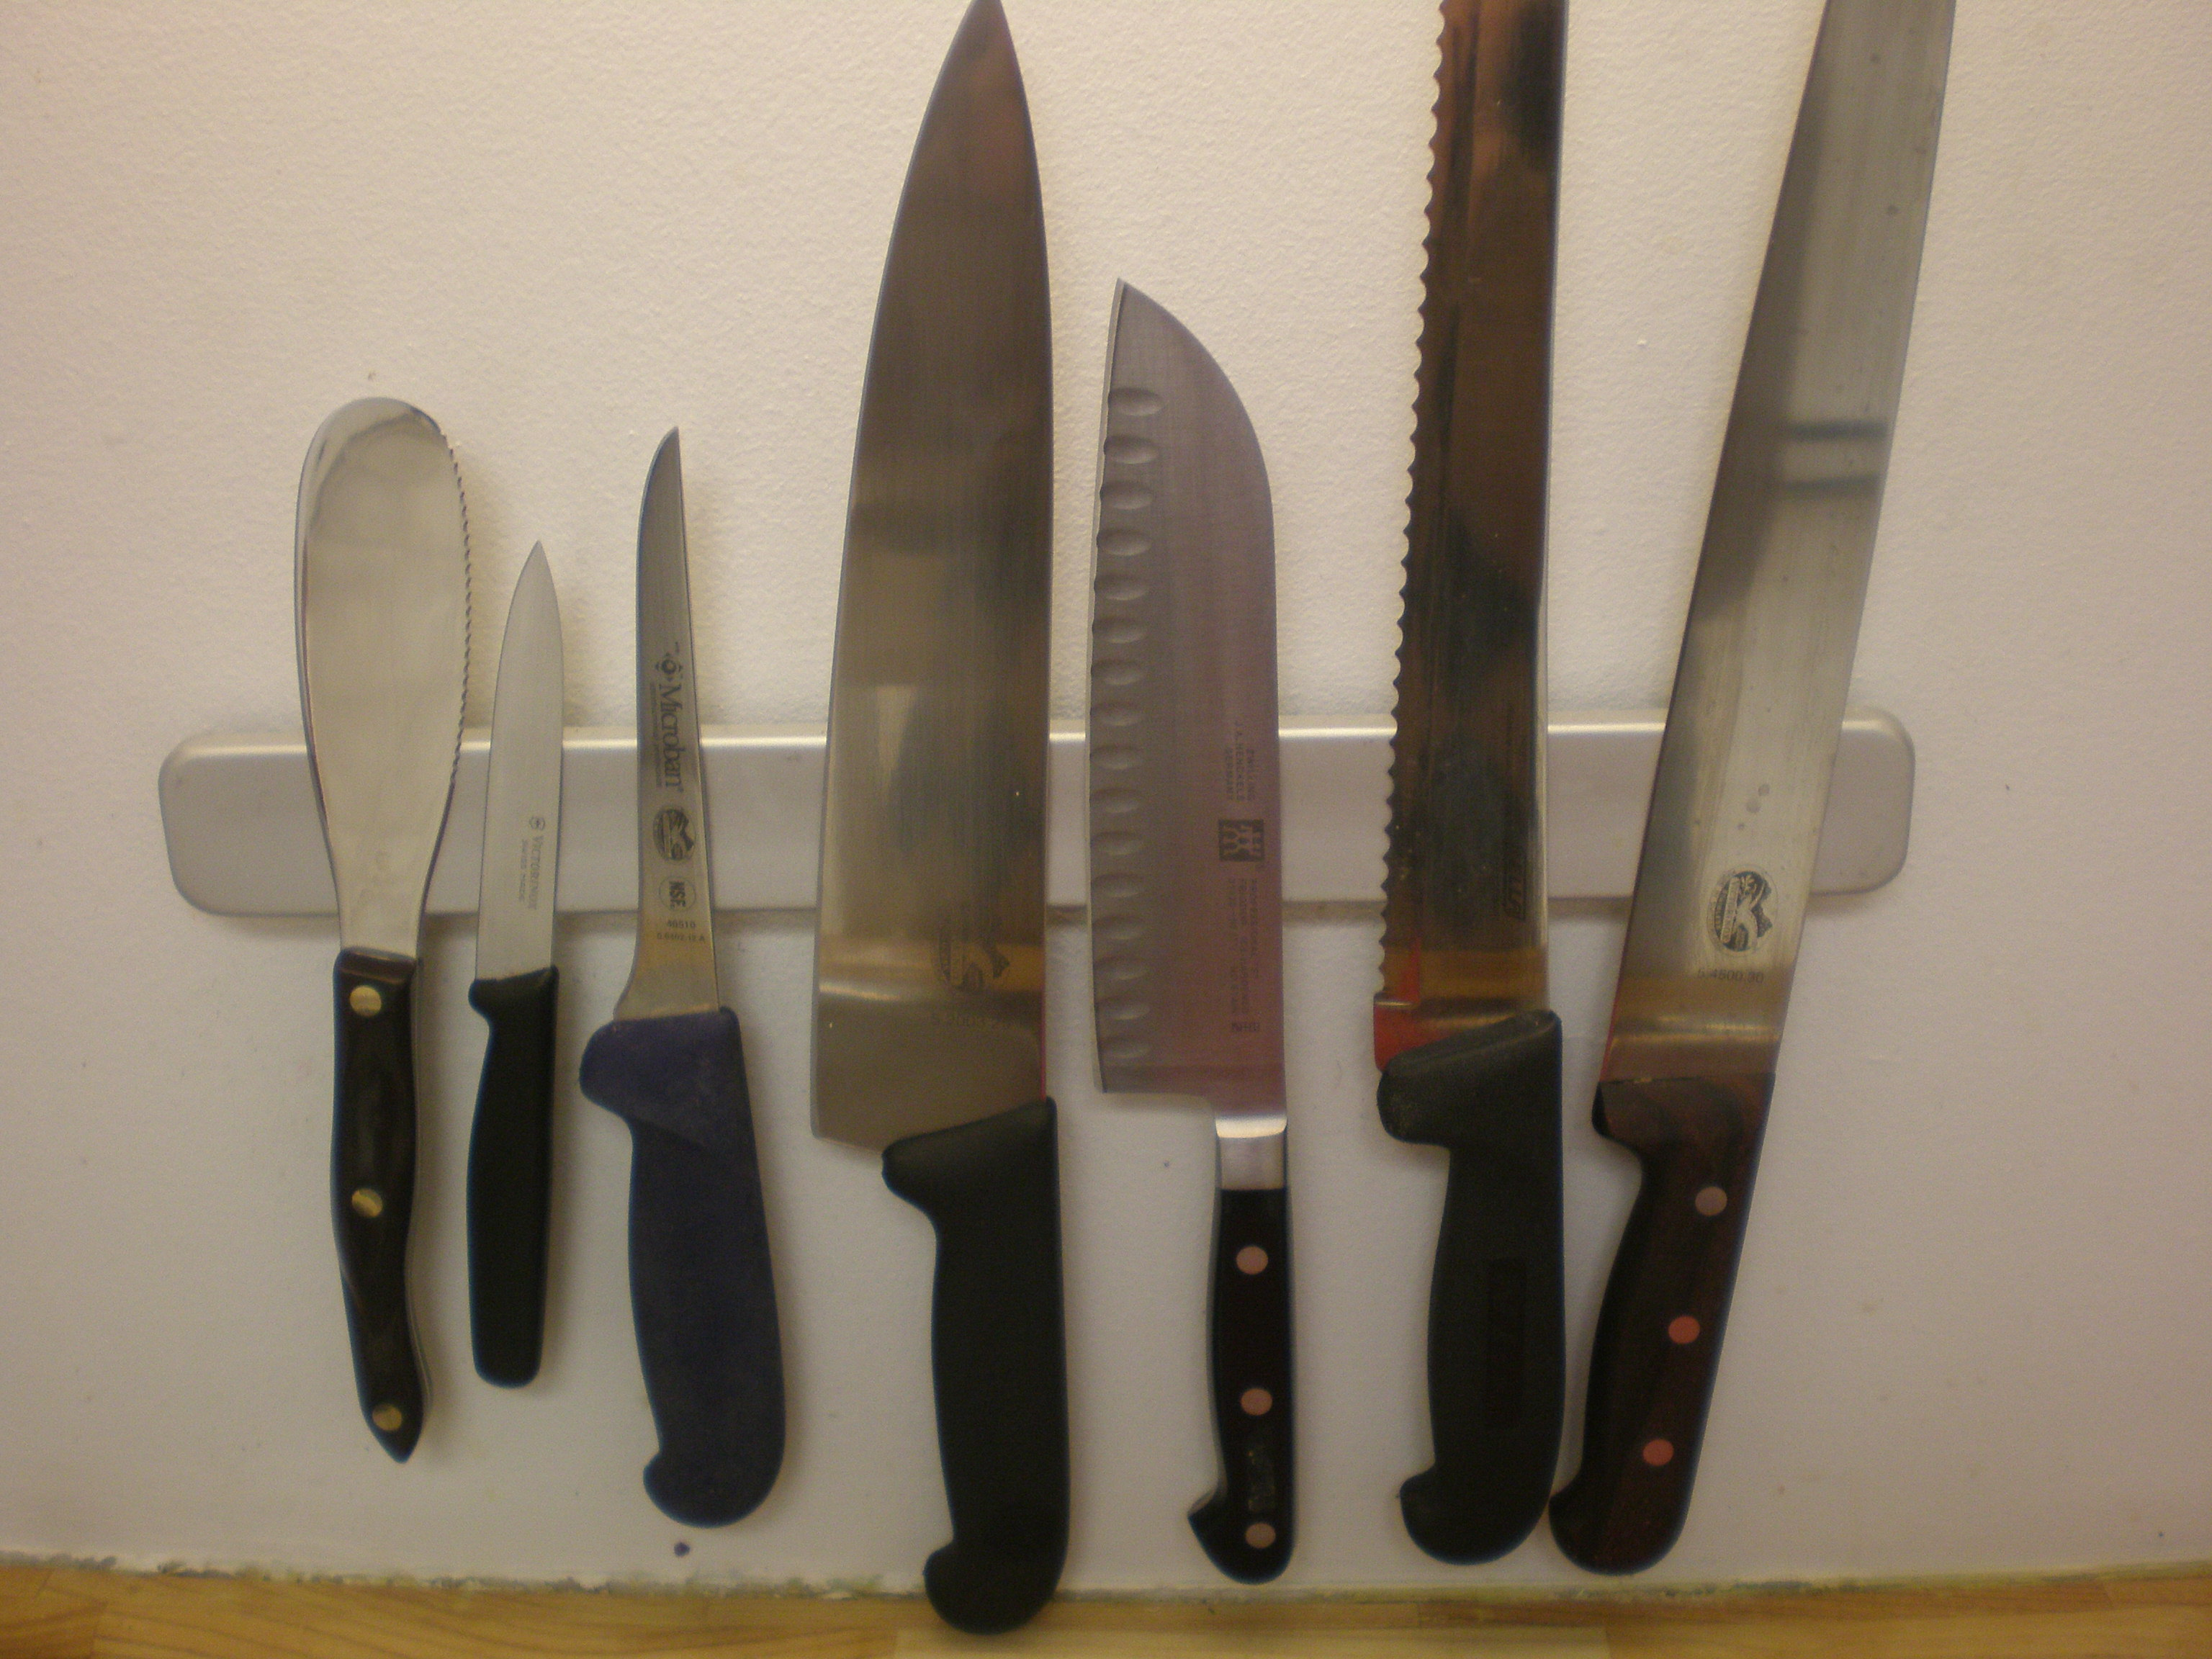 Our arsenal of kitchen knives